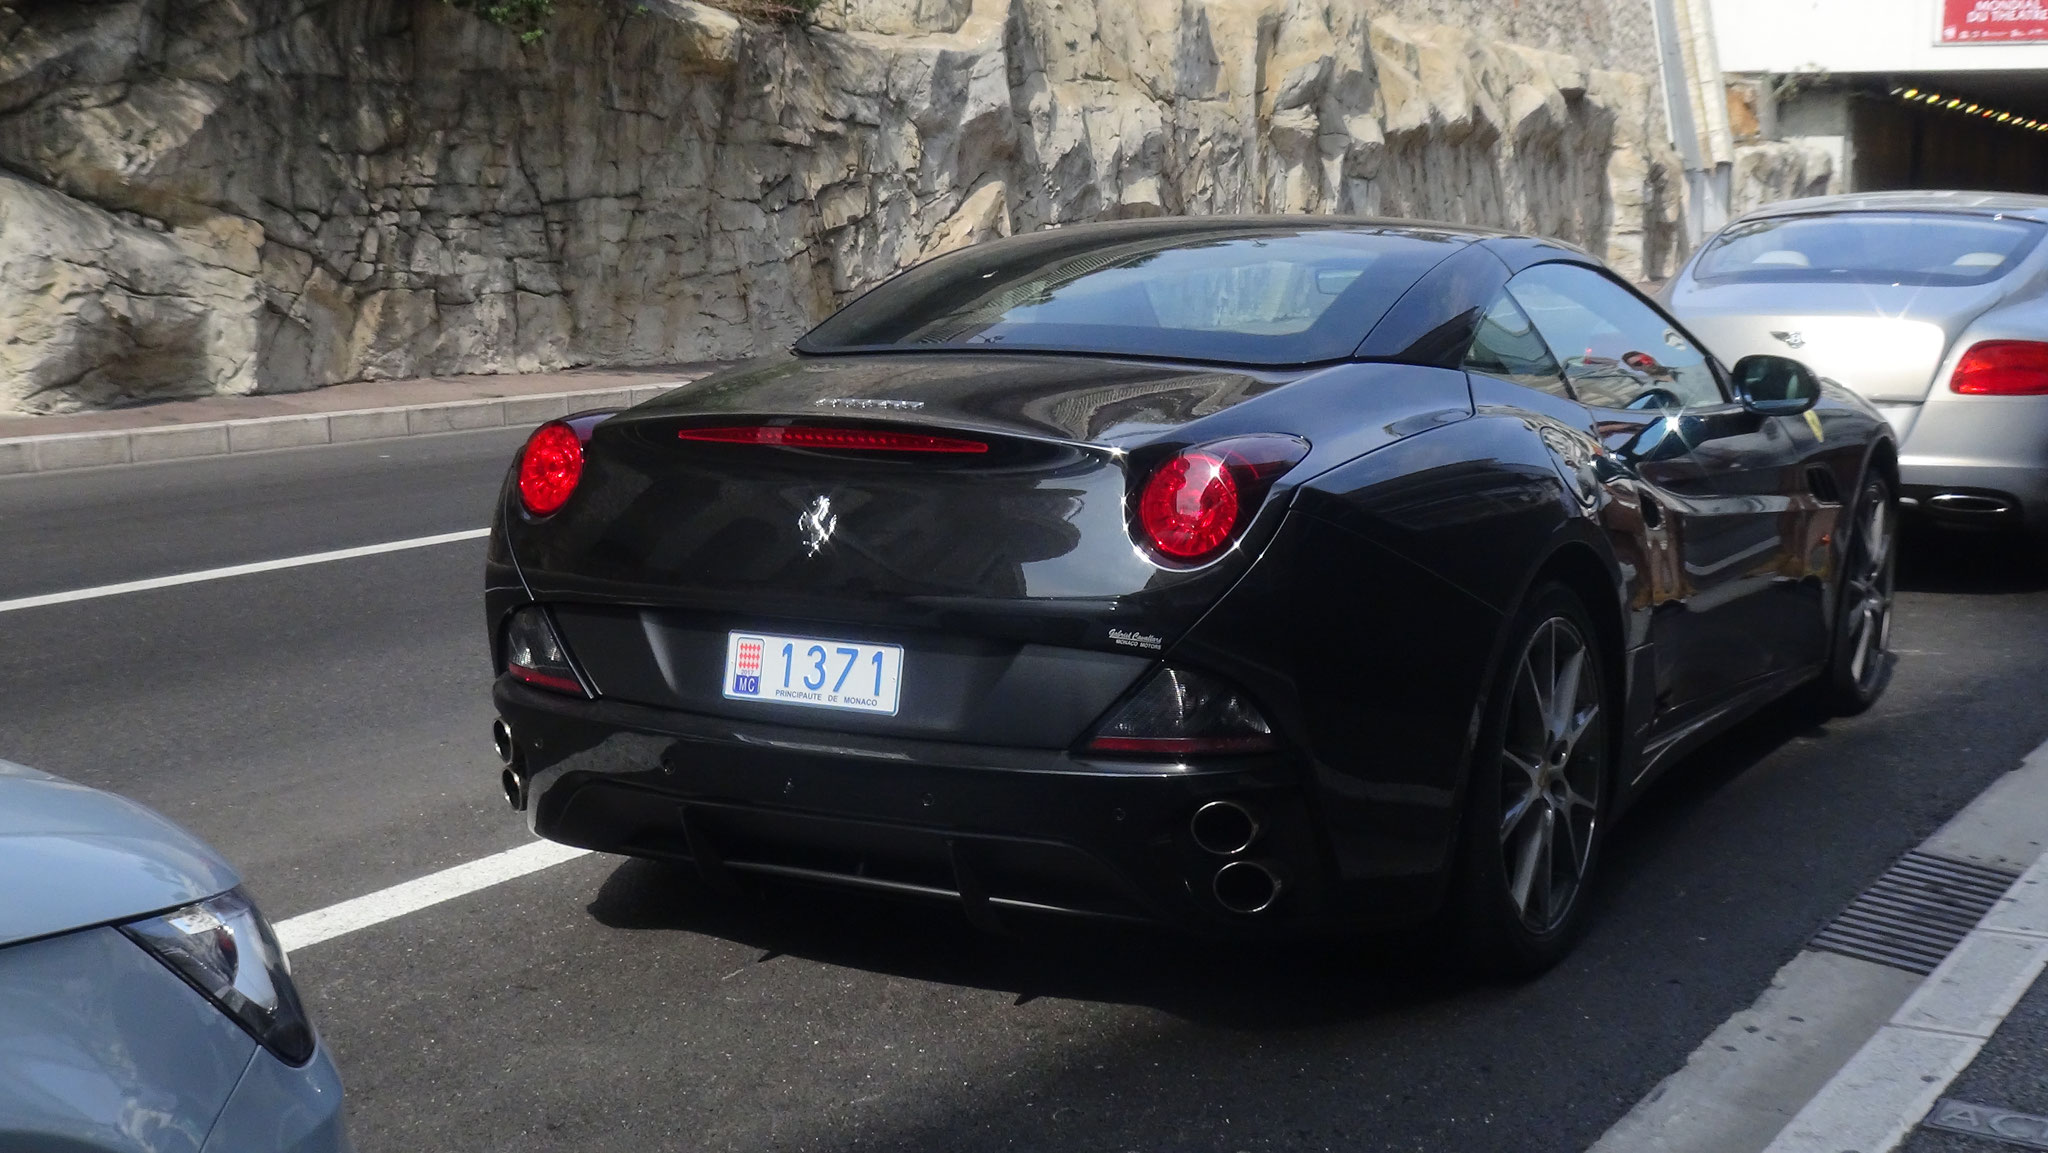 Ferrari California - 1371 (MC)